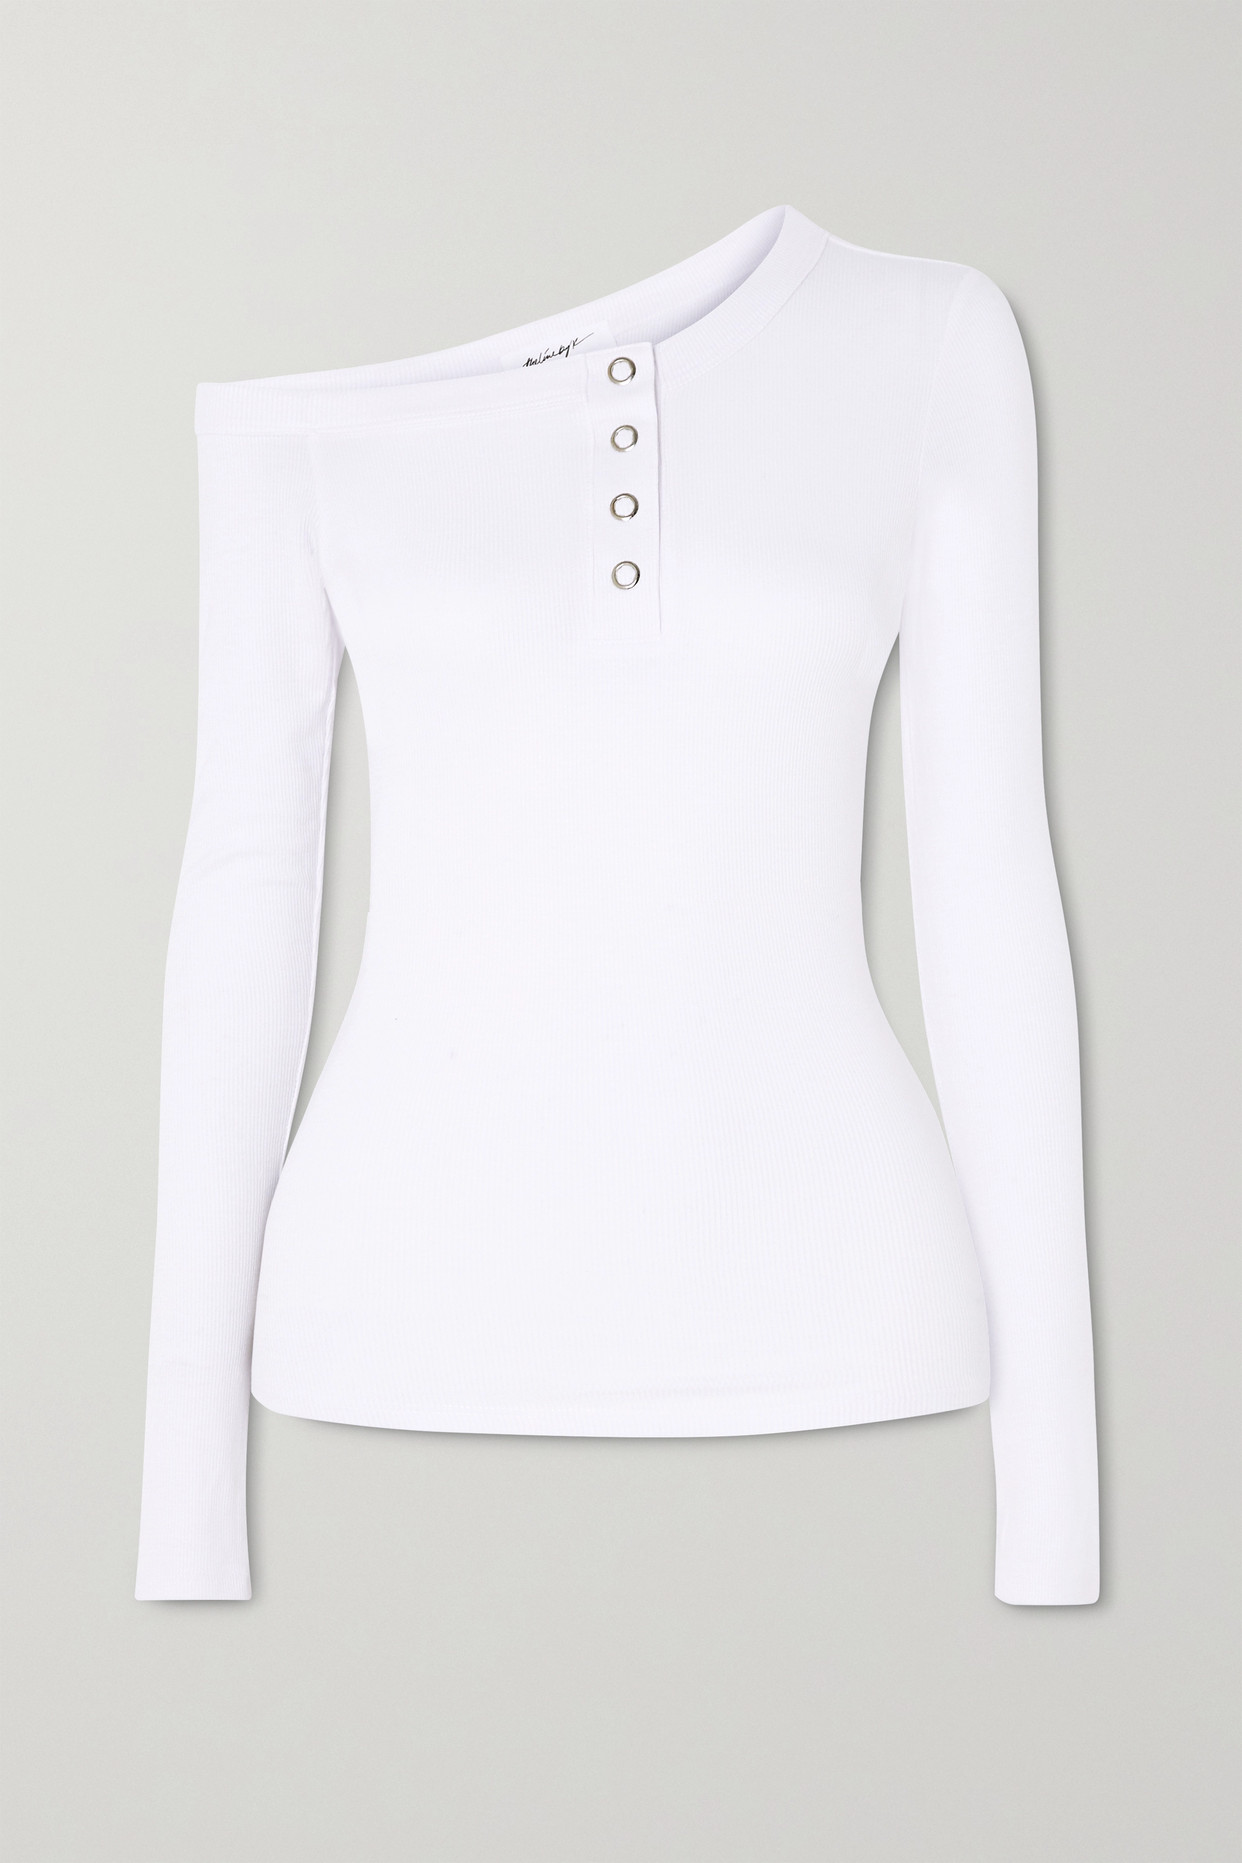 THE LINE BY K - Harley Off-the-shoulder Ribbed Jersey Top - White - x small